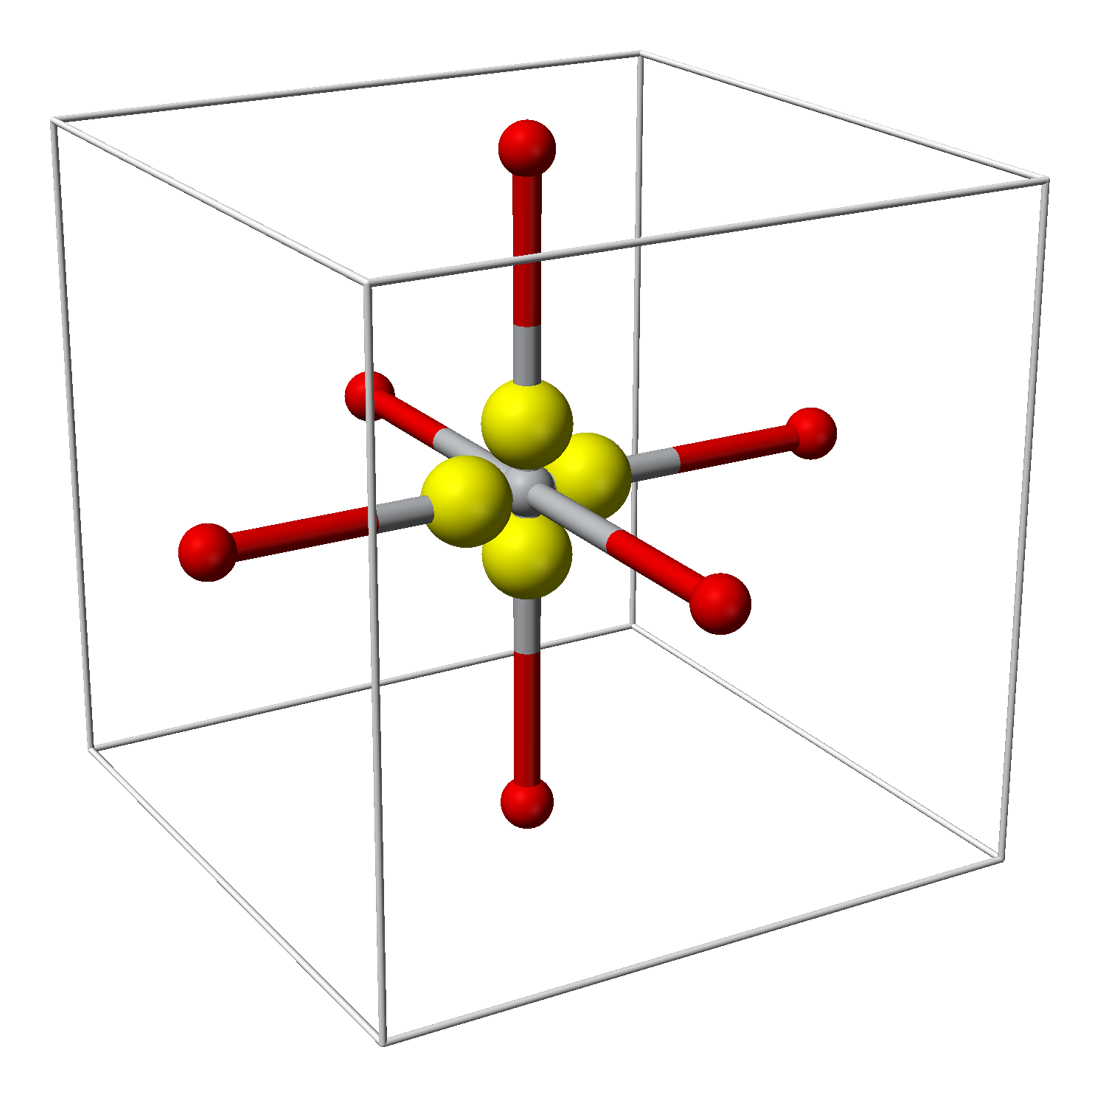 Crystal clipart octahedral. File ml dx y